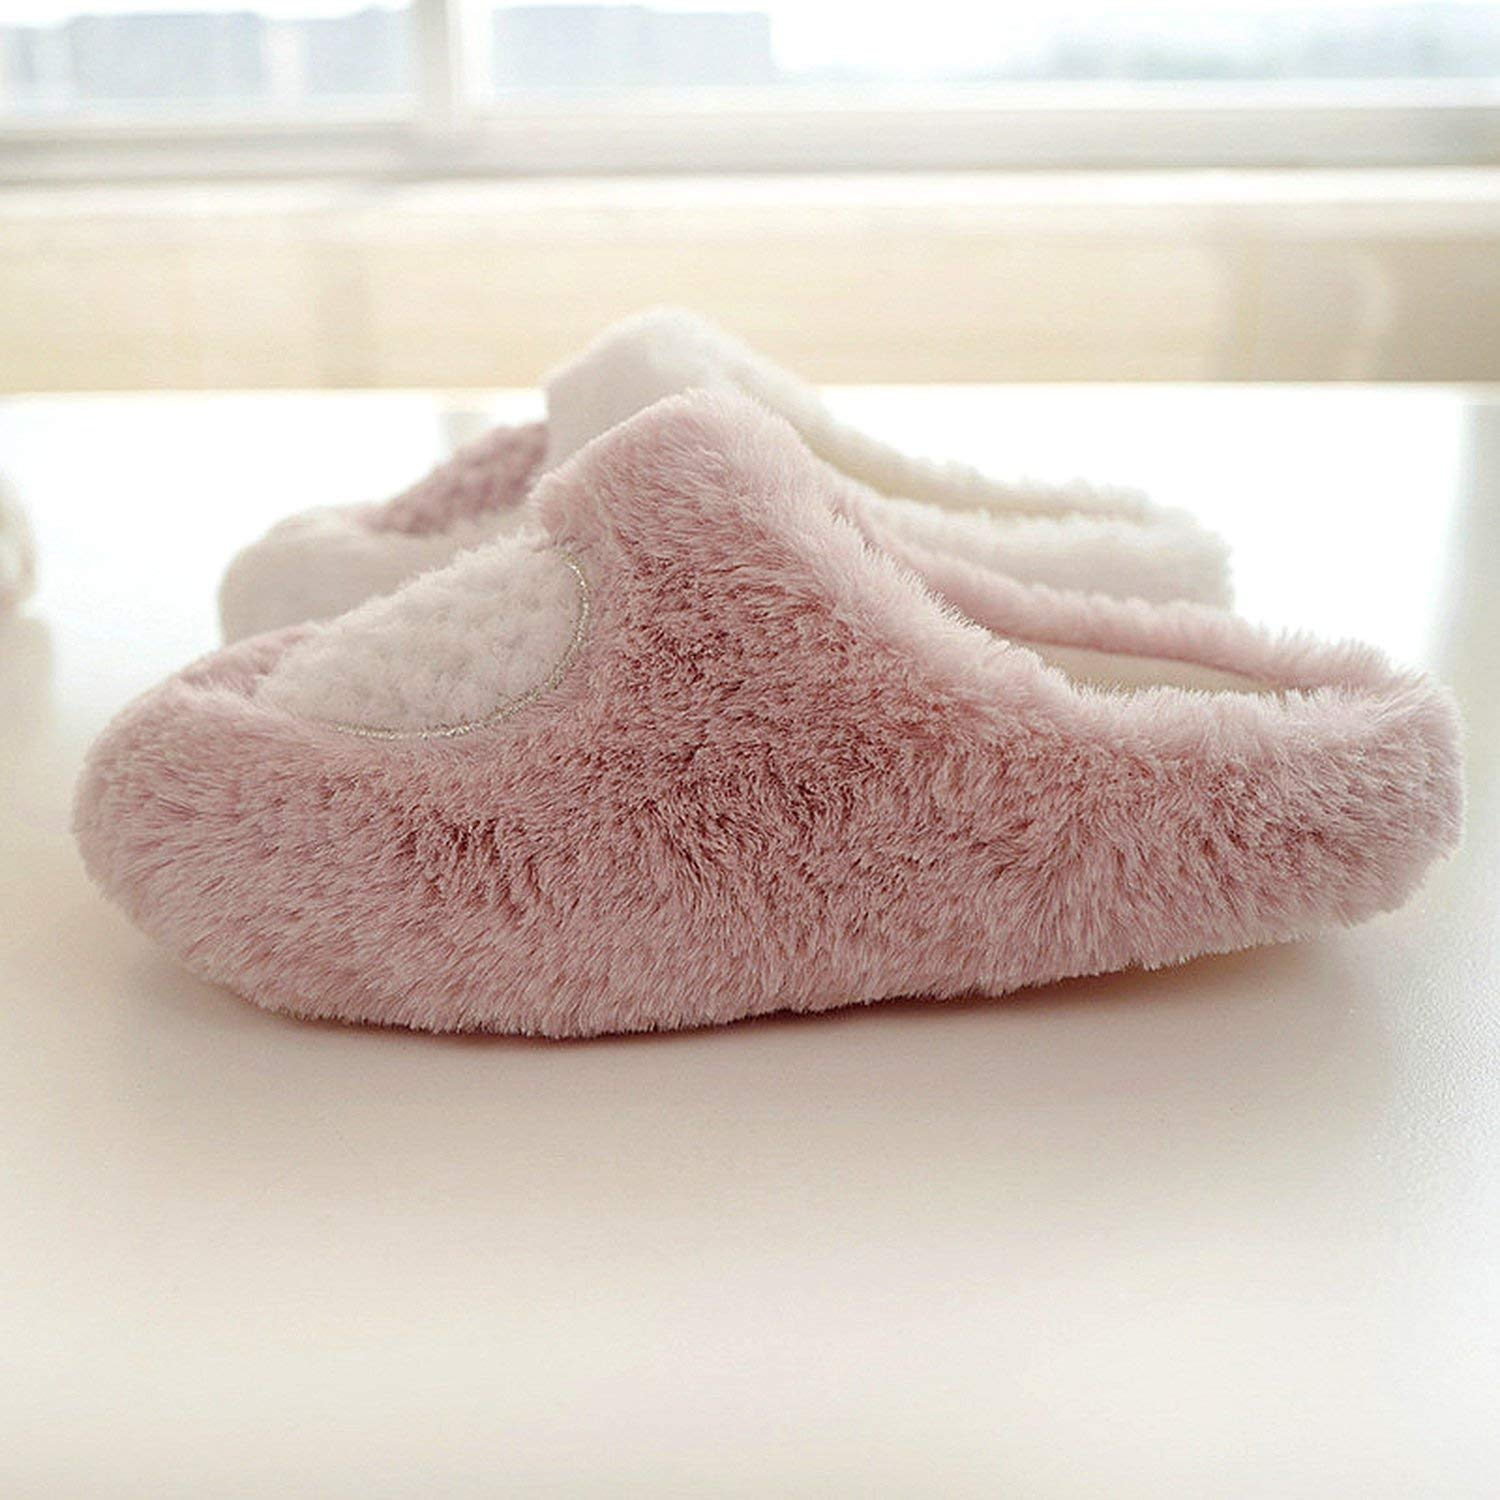 Fantastic-Journey Female Indoor Winter Warm Fluffy Home Shoes White//Pink Heart-Shaped Pregnant Woman Slippers